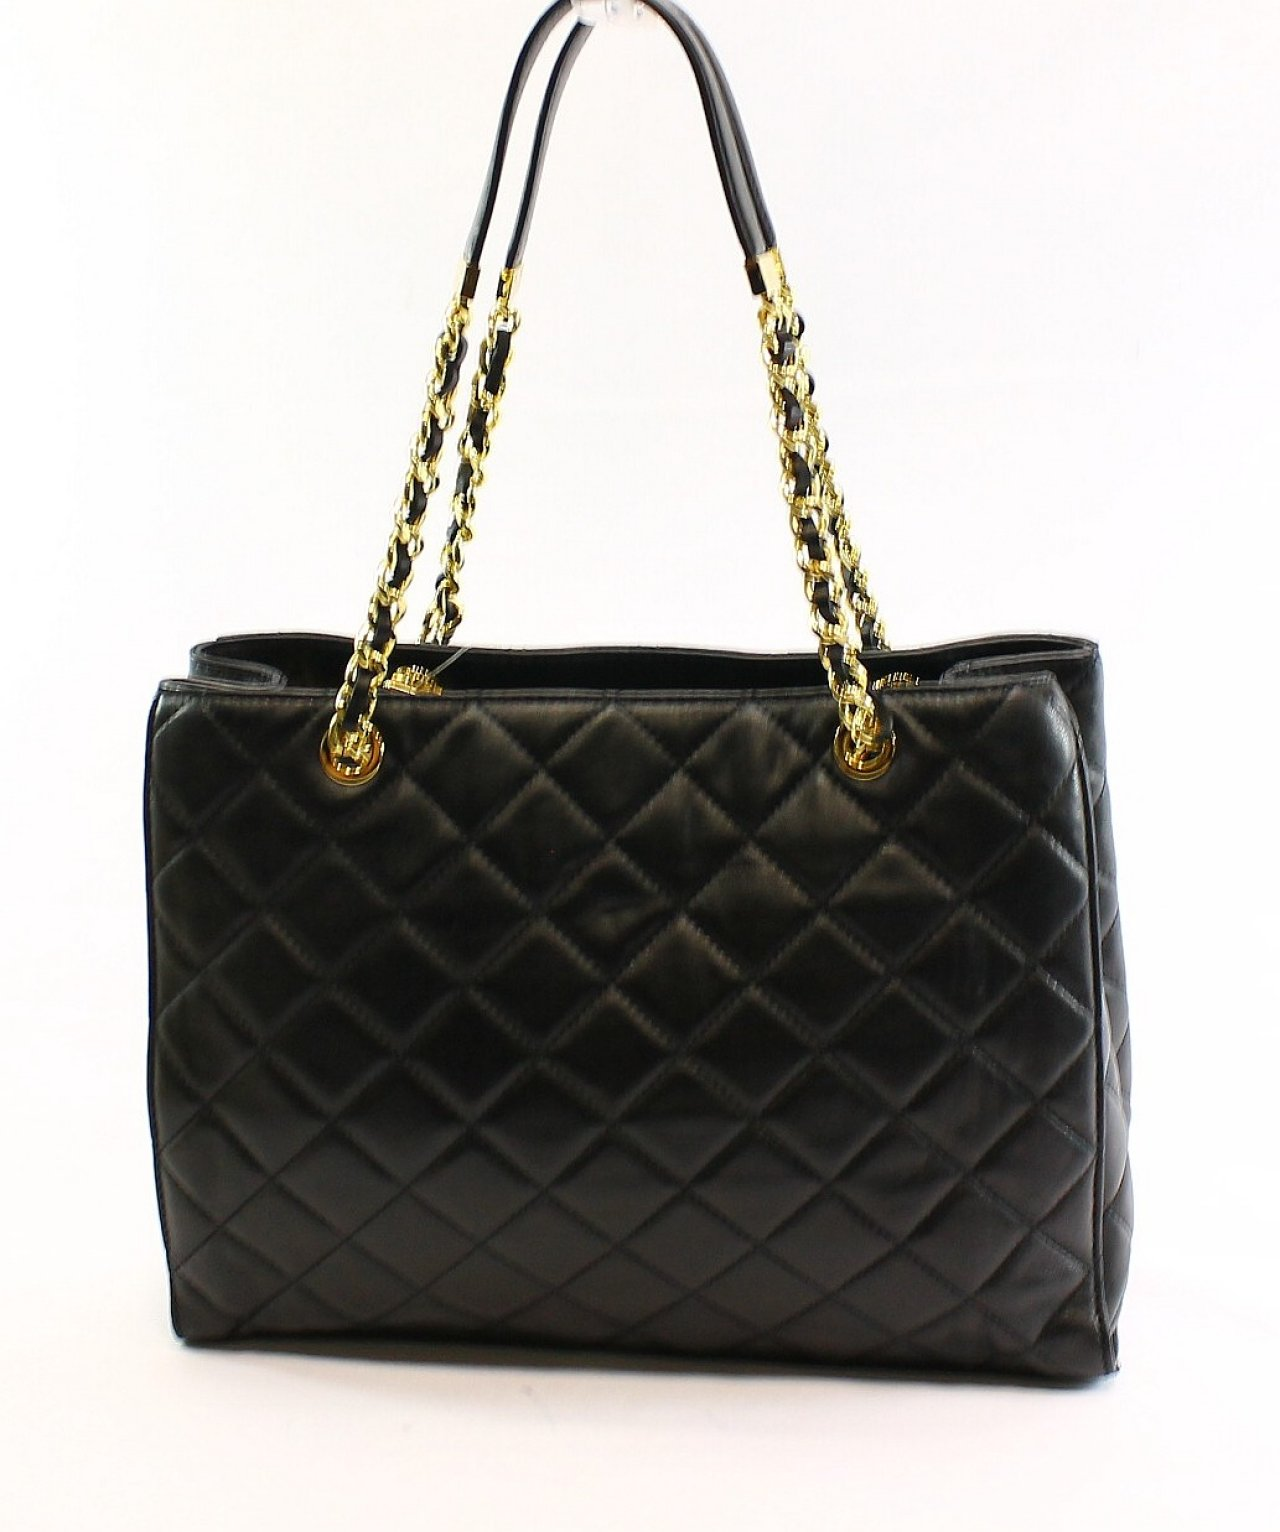 d58ba08ab453 Michael Kors NEW Black Leather Quilted Susannah Large Tote Bag Purse $398-  | eBay